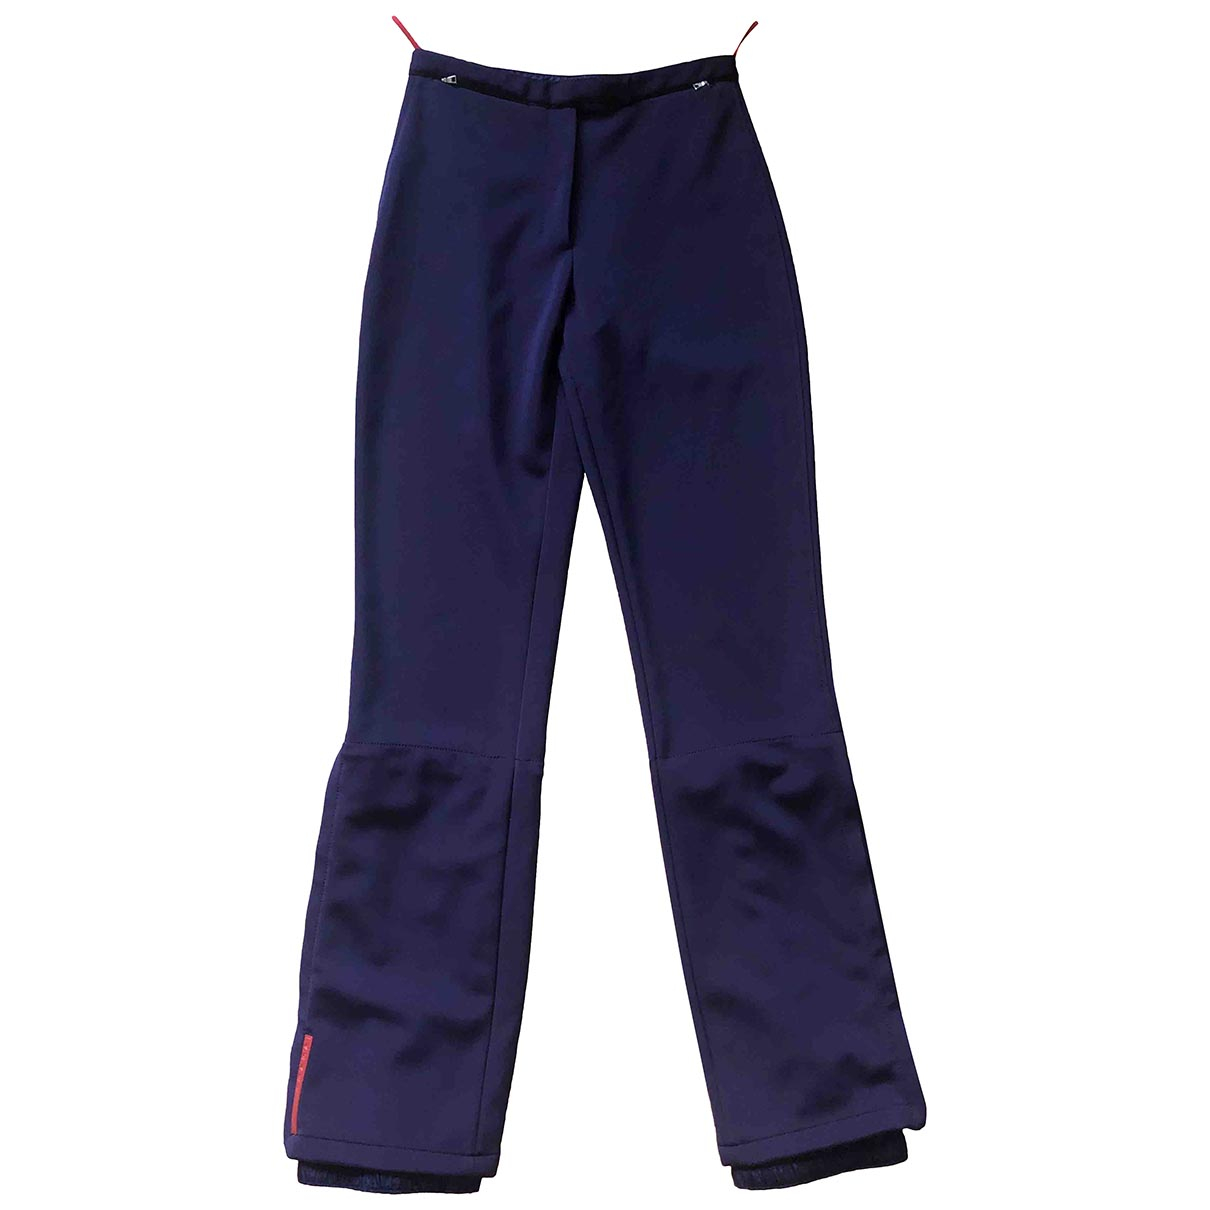 Prada \N Purple Spandex Trousers for Women 38 IT